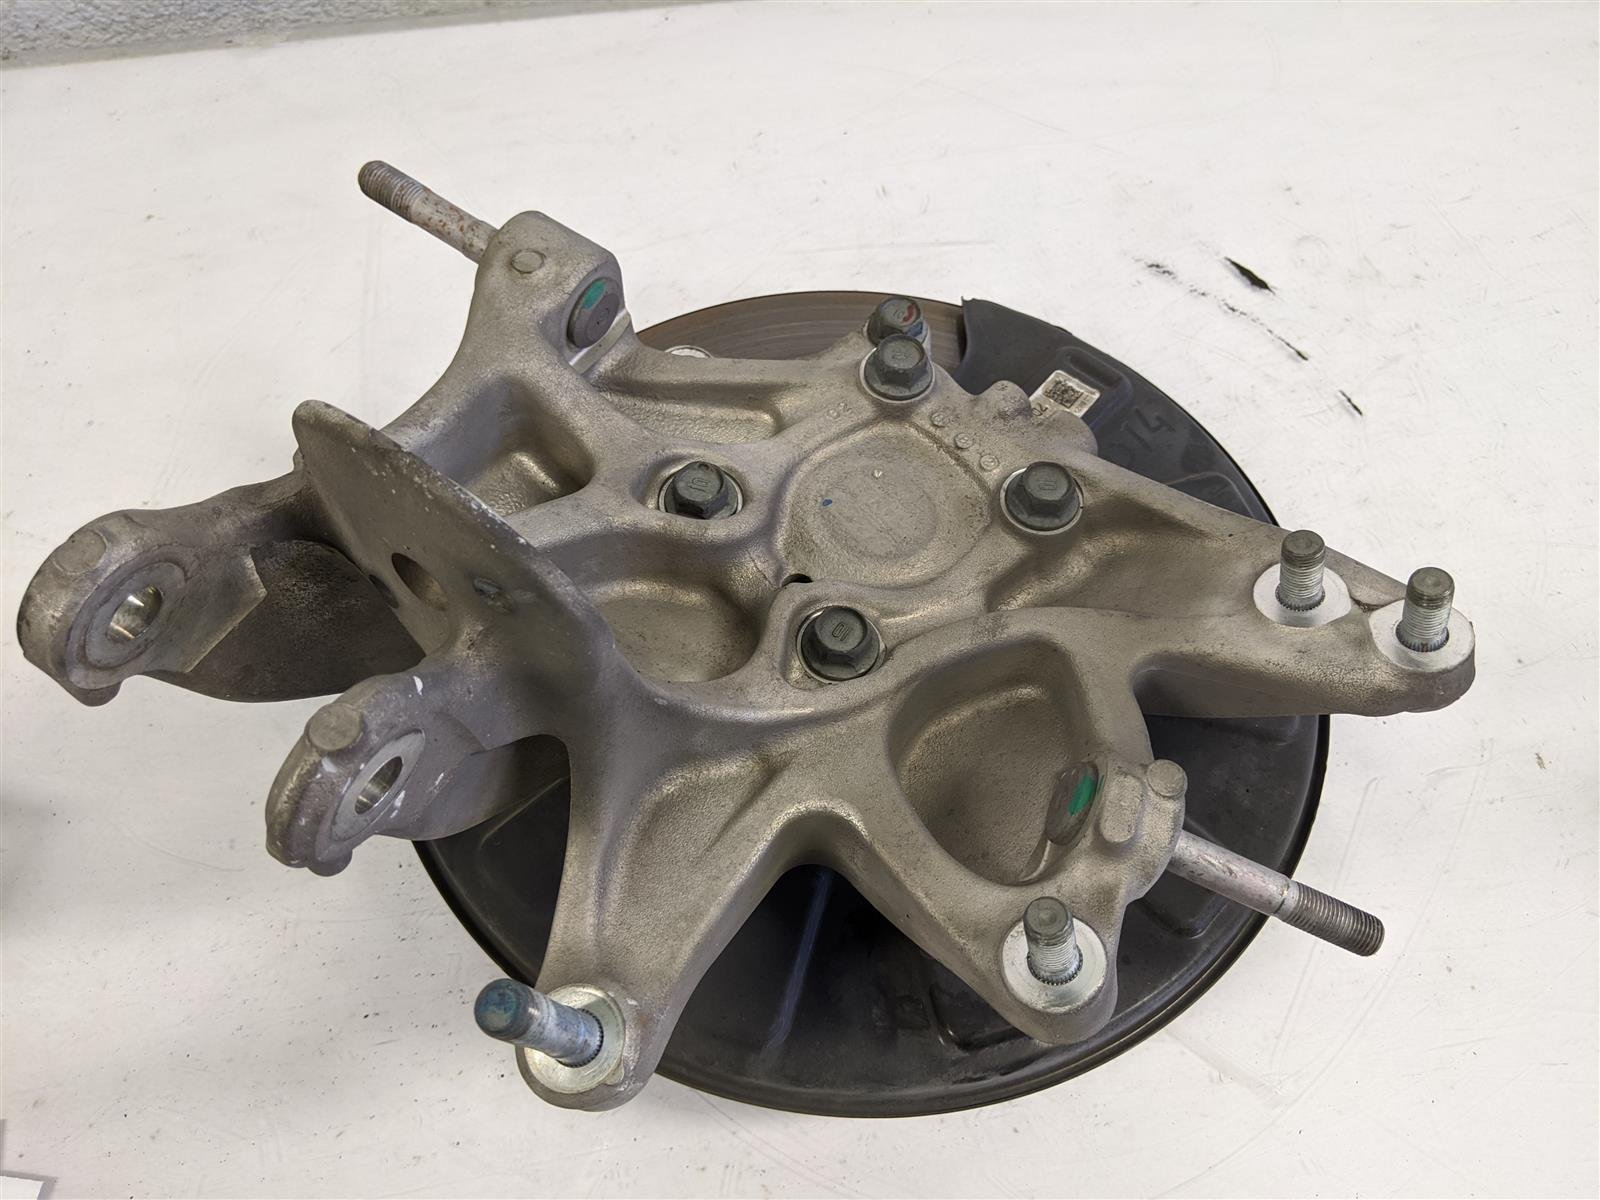 2018 Honda Odyssey Rear Driver Spindle Knuckle Replacement